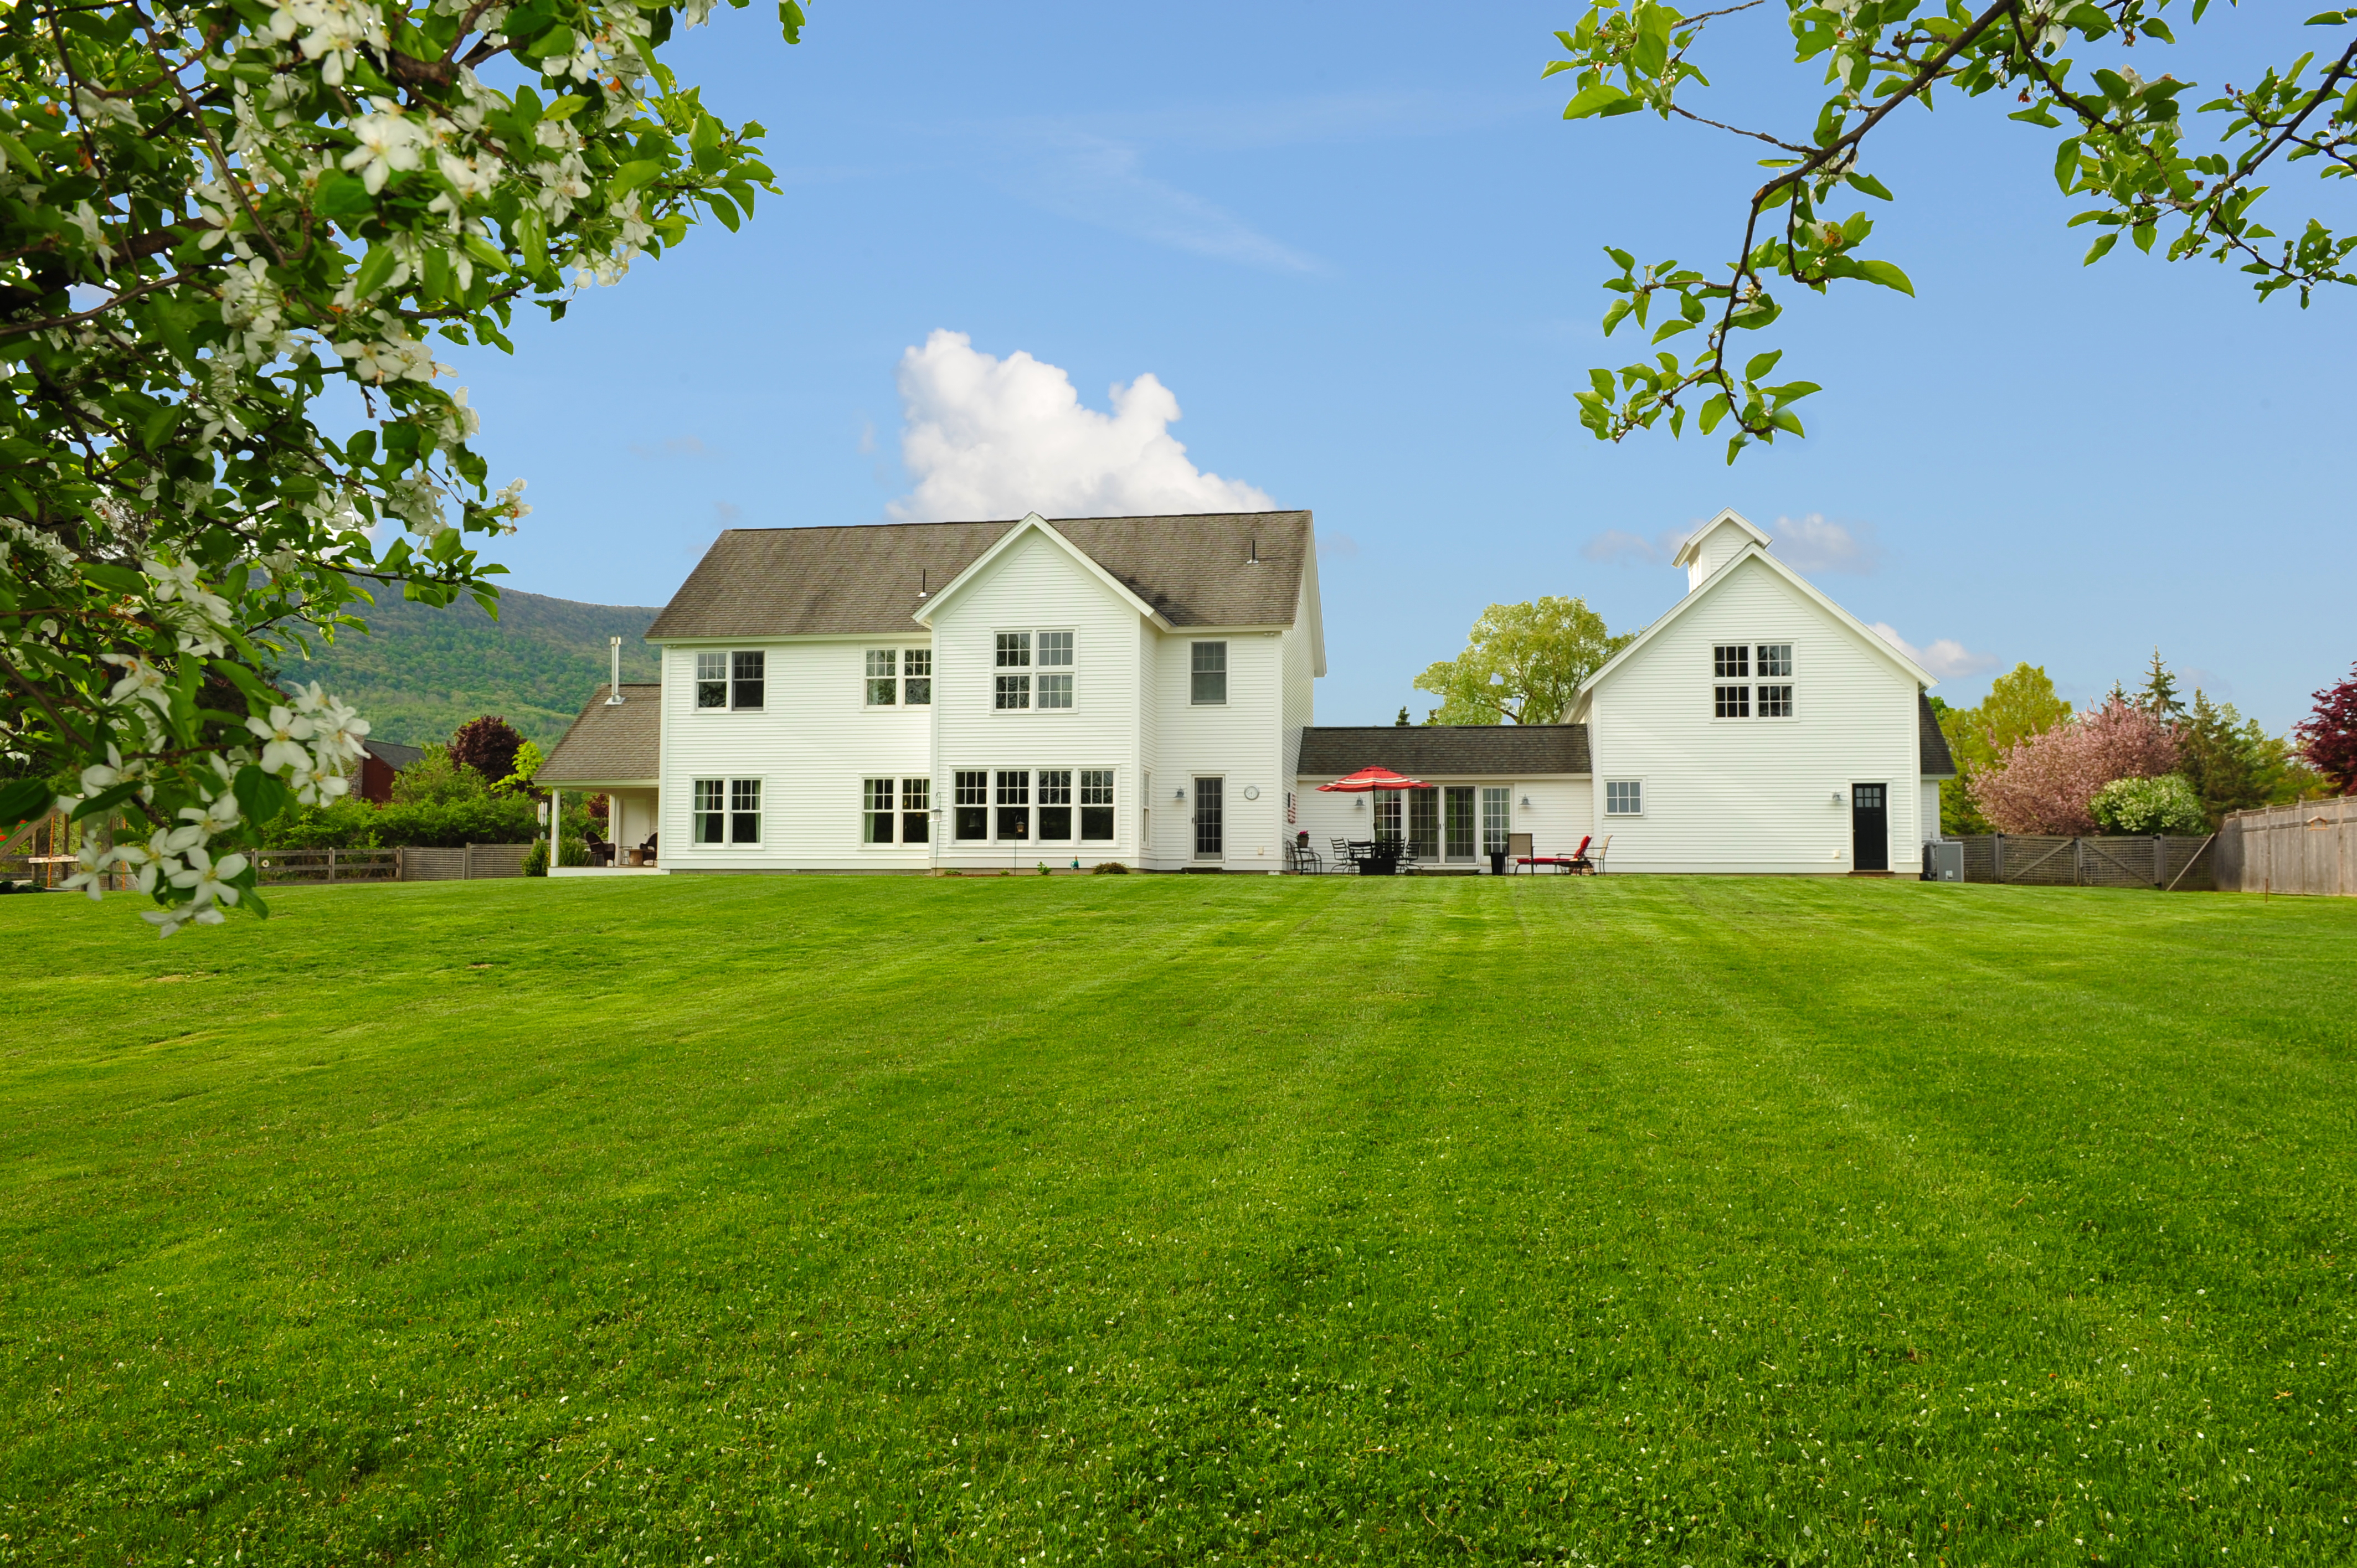 Single Family Home for Sale at Wonderful Custom Contemporary Home on Quiet Cul-De-Sac in Desirable Williamstown 26 Stoney Ledge Rd Williamstown, Massachusetts 01267 United States